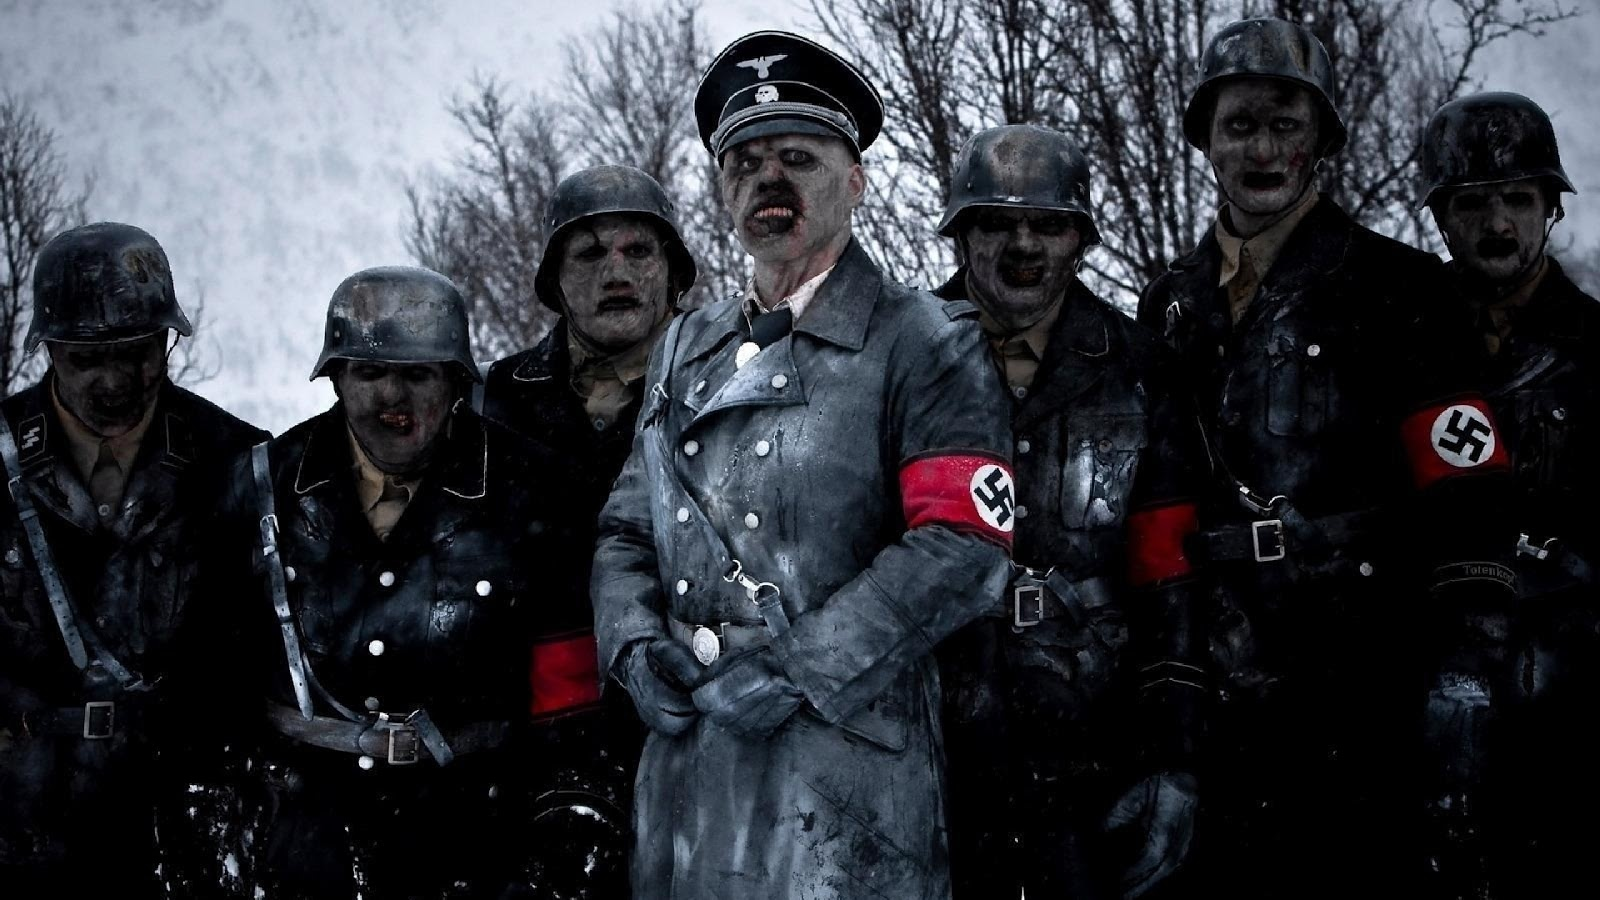 Nazi zombies in Dead Snow (2009)